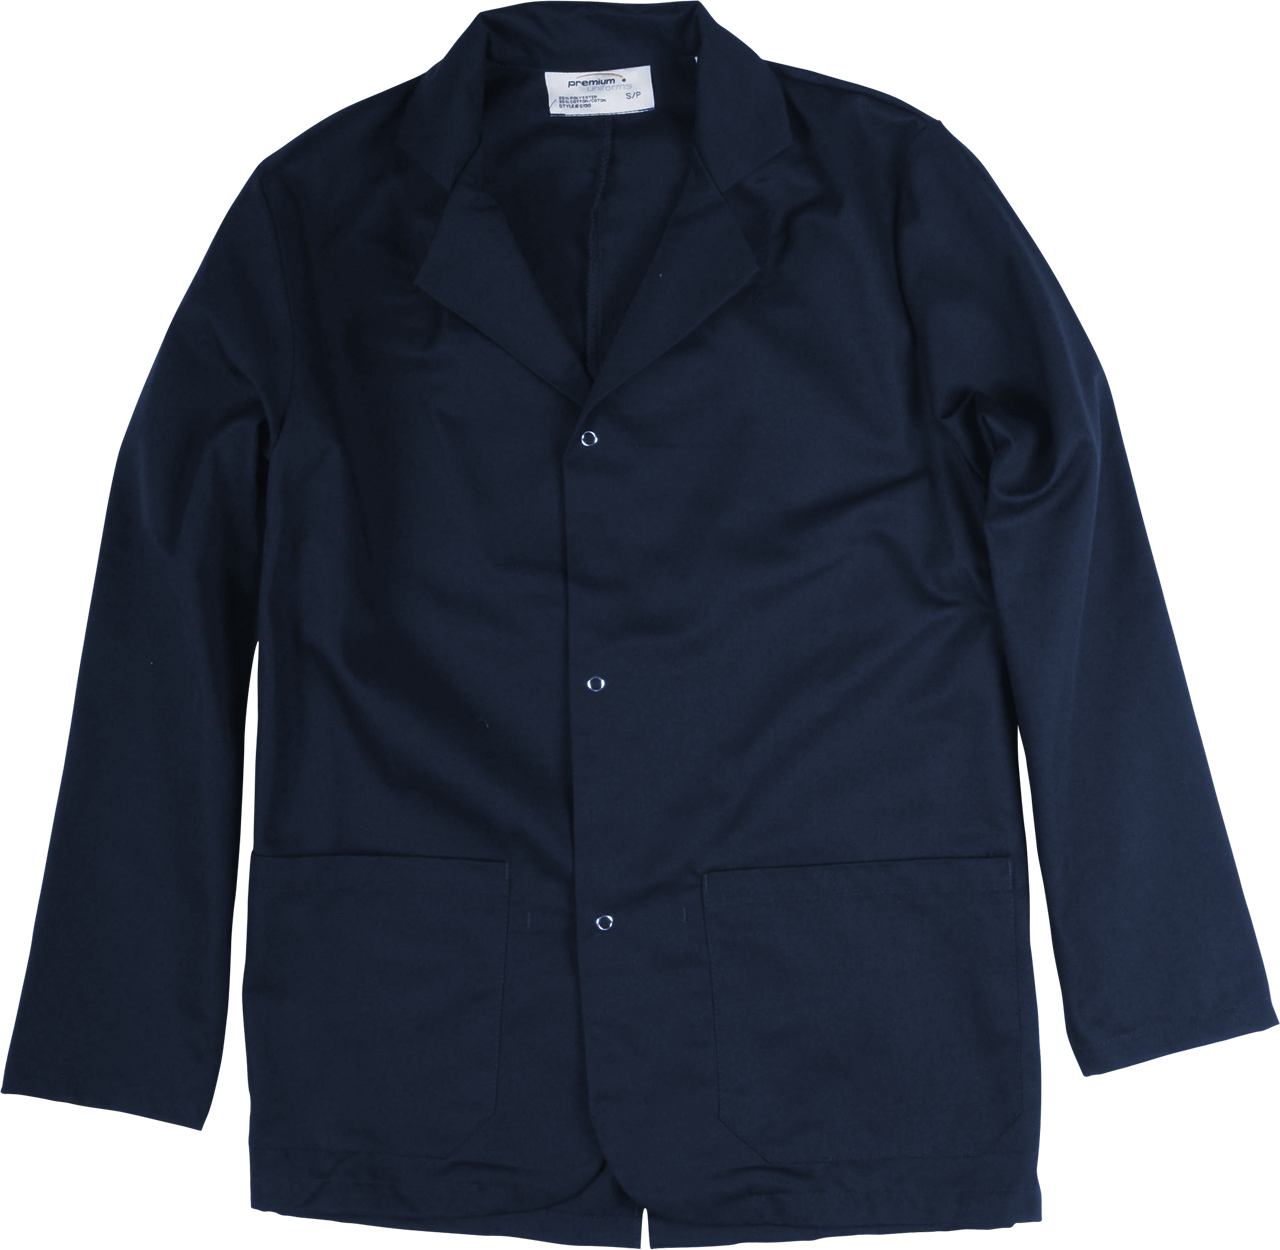 Picture of Premium Uniforms Two-Pocket Counter Coat With Snap Closure